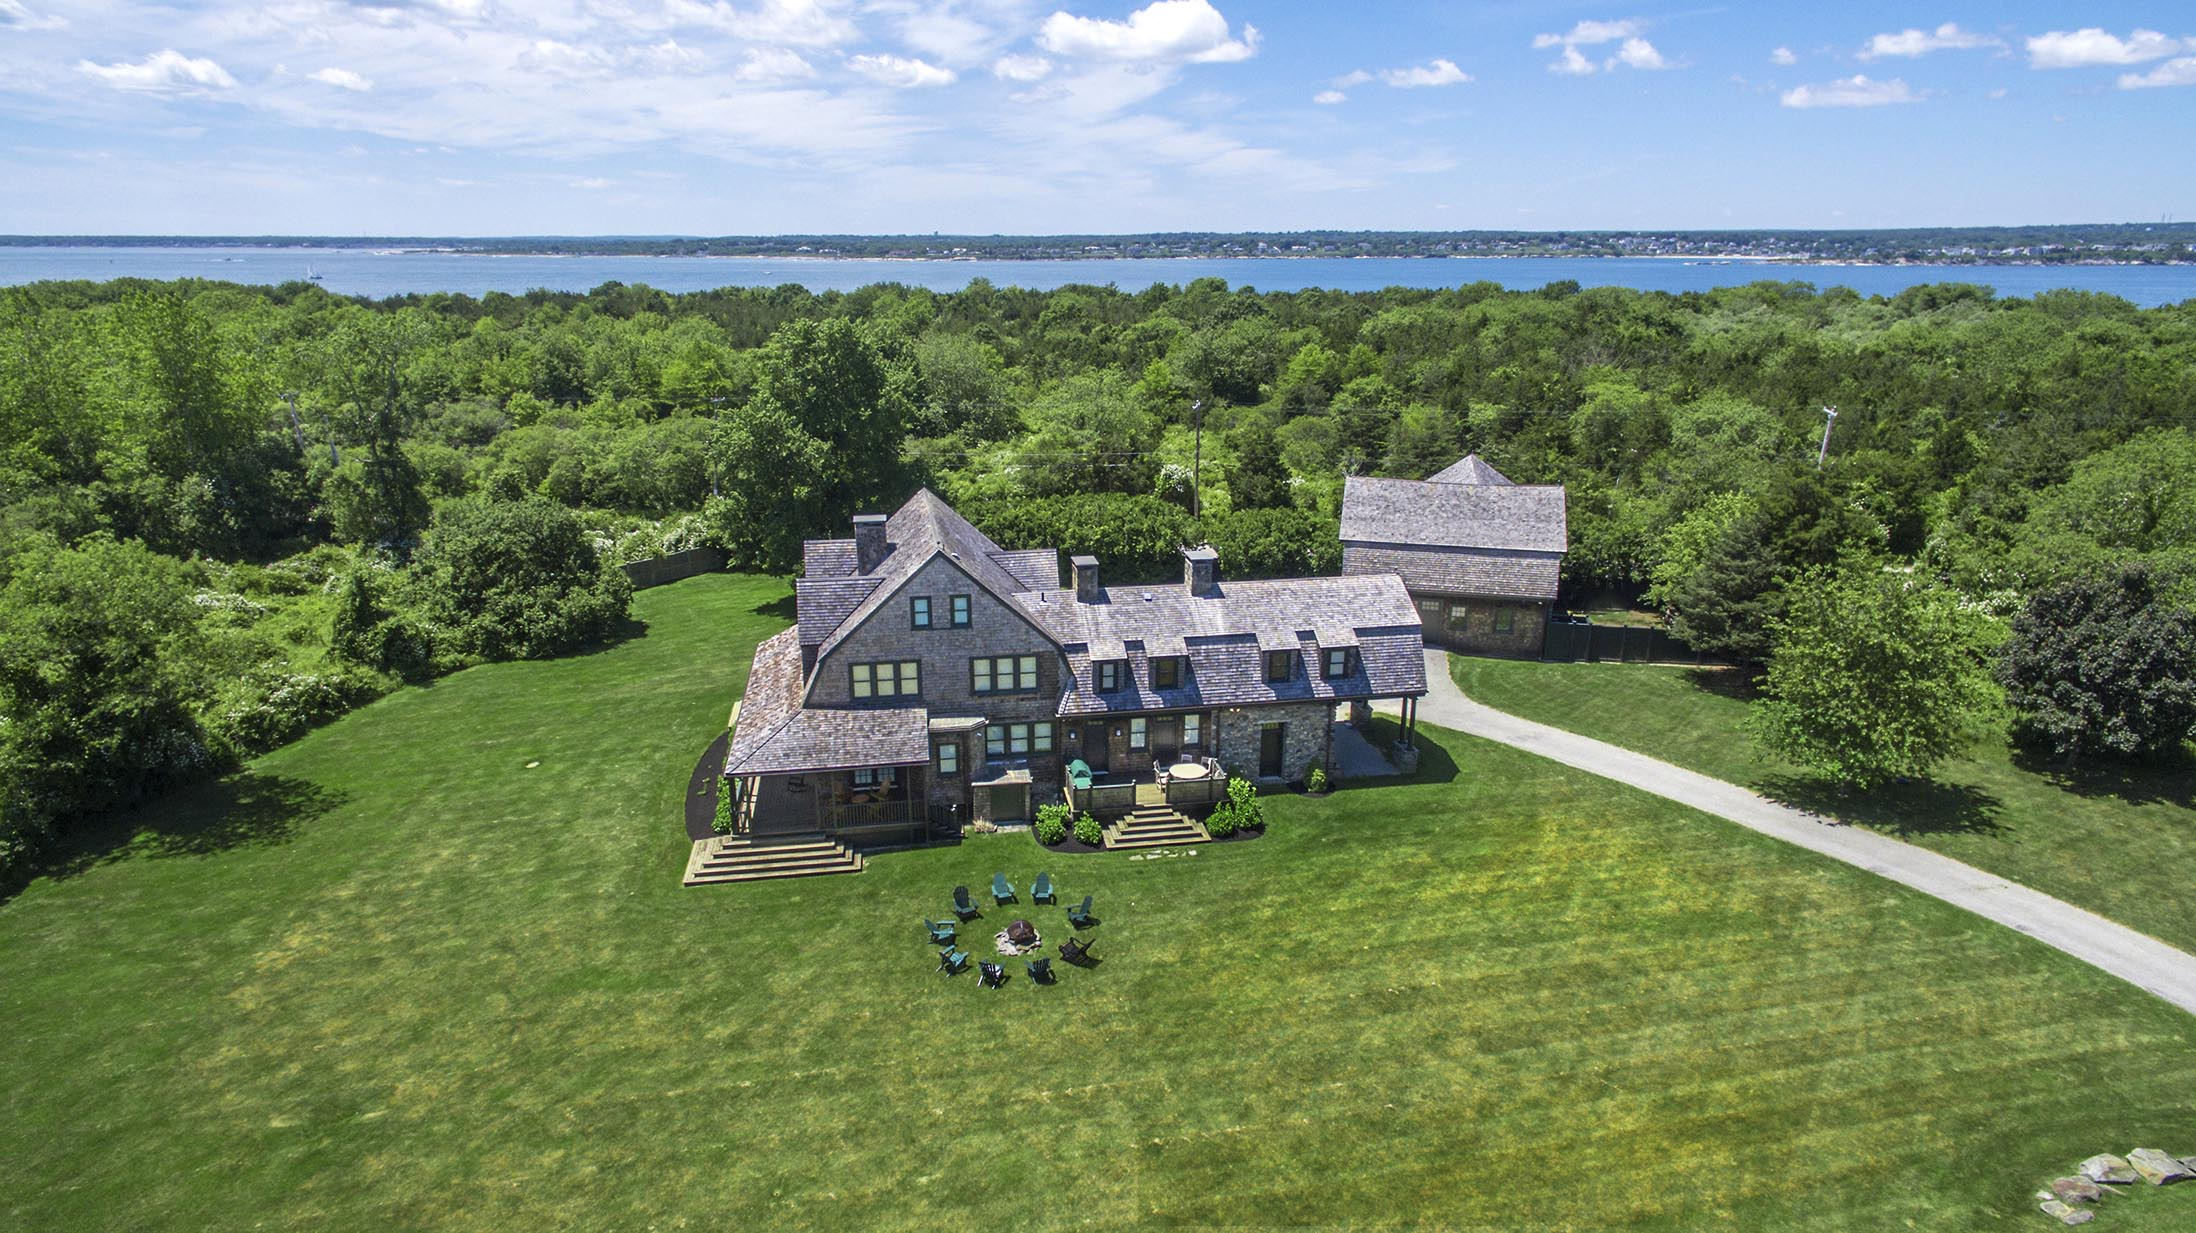 HISTORIC BEAVERTAIL FARMHOUSE ON 2.5 ACRES SELLS FOR $2,500,000, WITH LILA DELMAN REAL ESTATE ASSOCIATES REPRESENTING THE BUYER AND THE SELLER